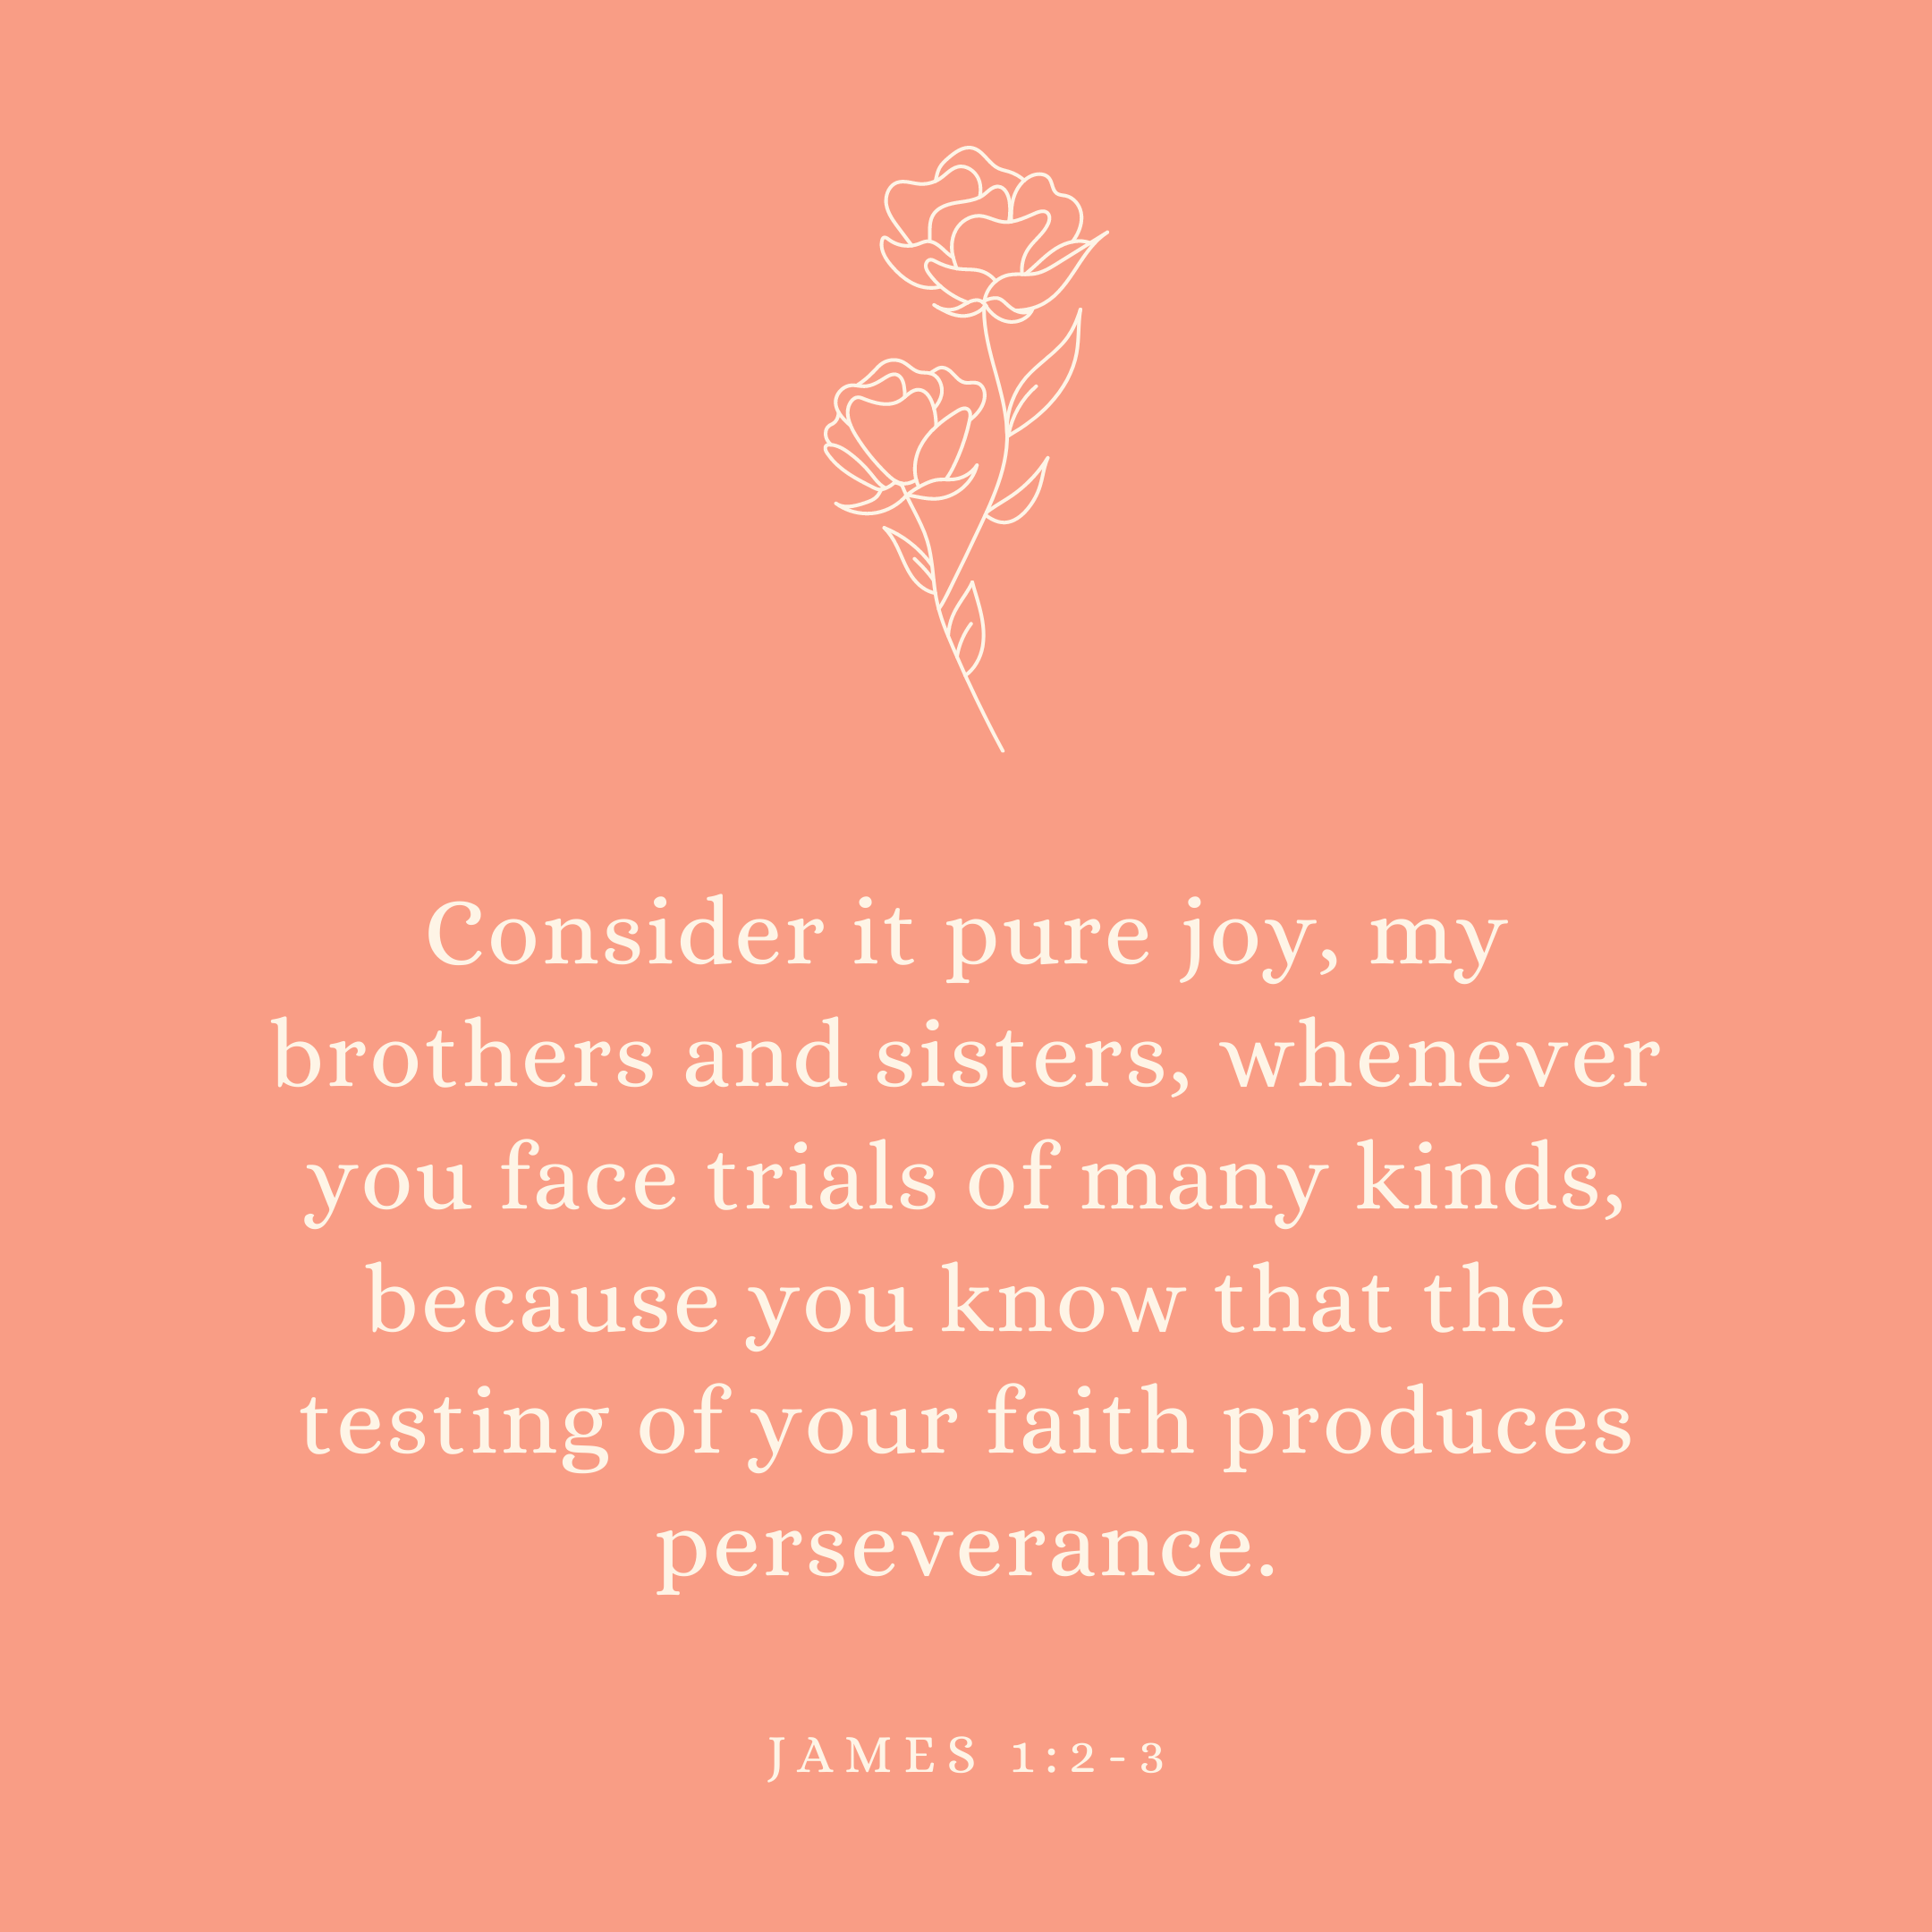 James 1:2-3 Consider it pure joy, my brothers and sisters, whenever you face trials of many kinds, because you know that the testing of your faith produces perseverance.